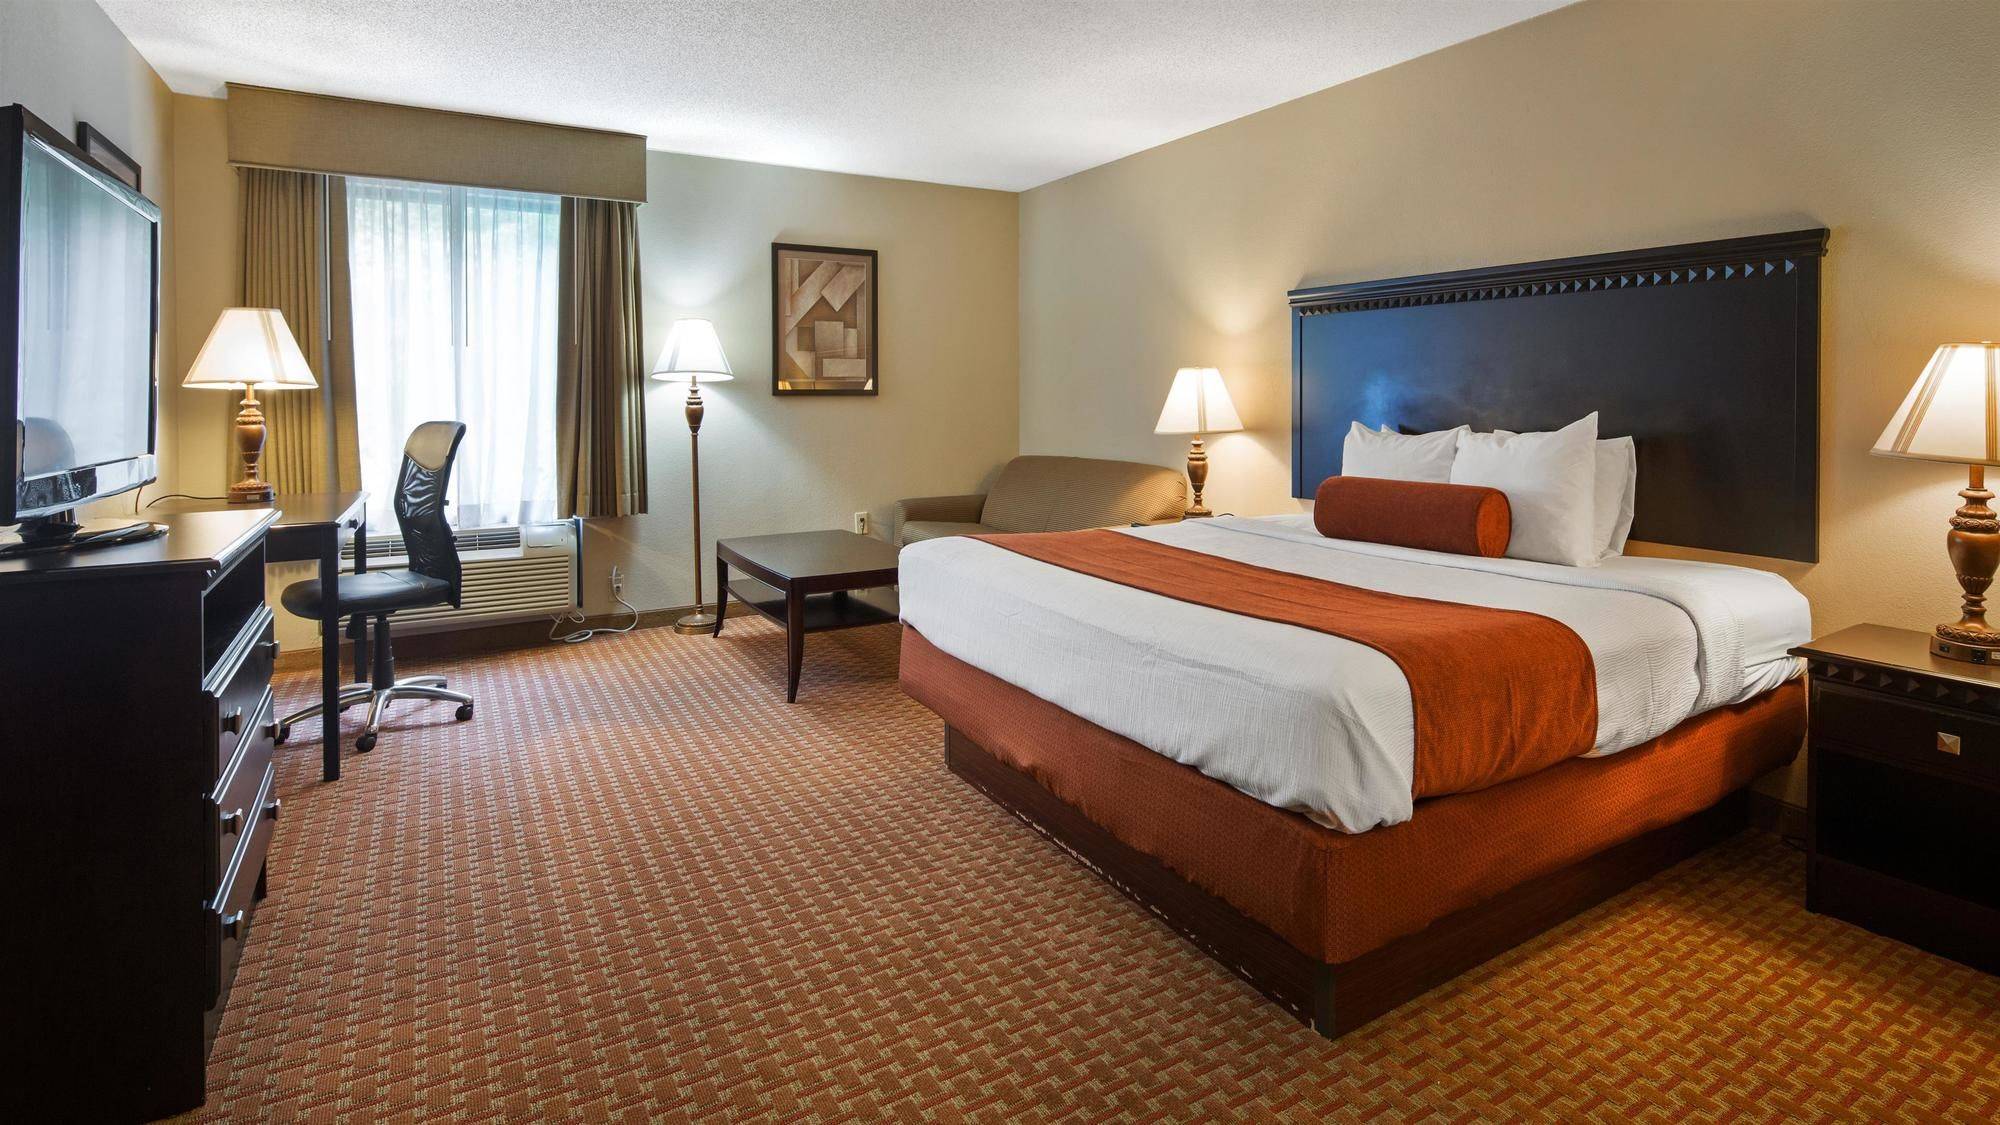 Hotel coupons com virginia